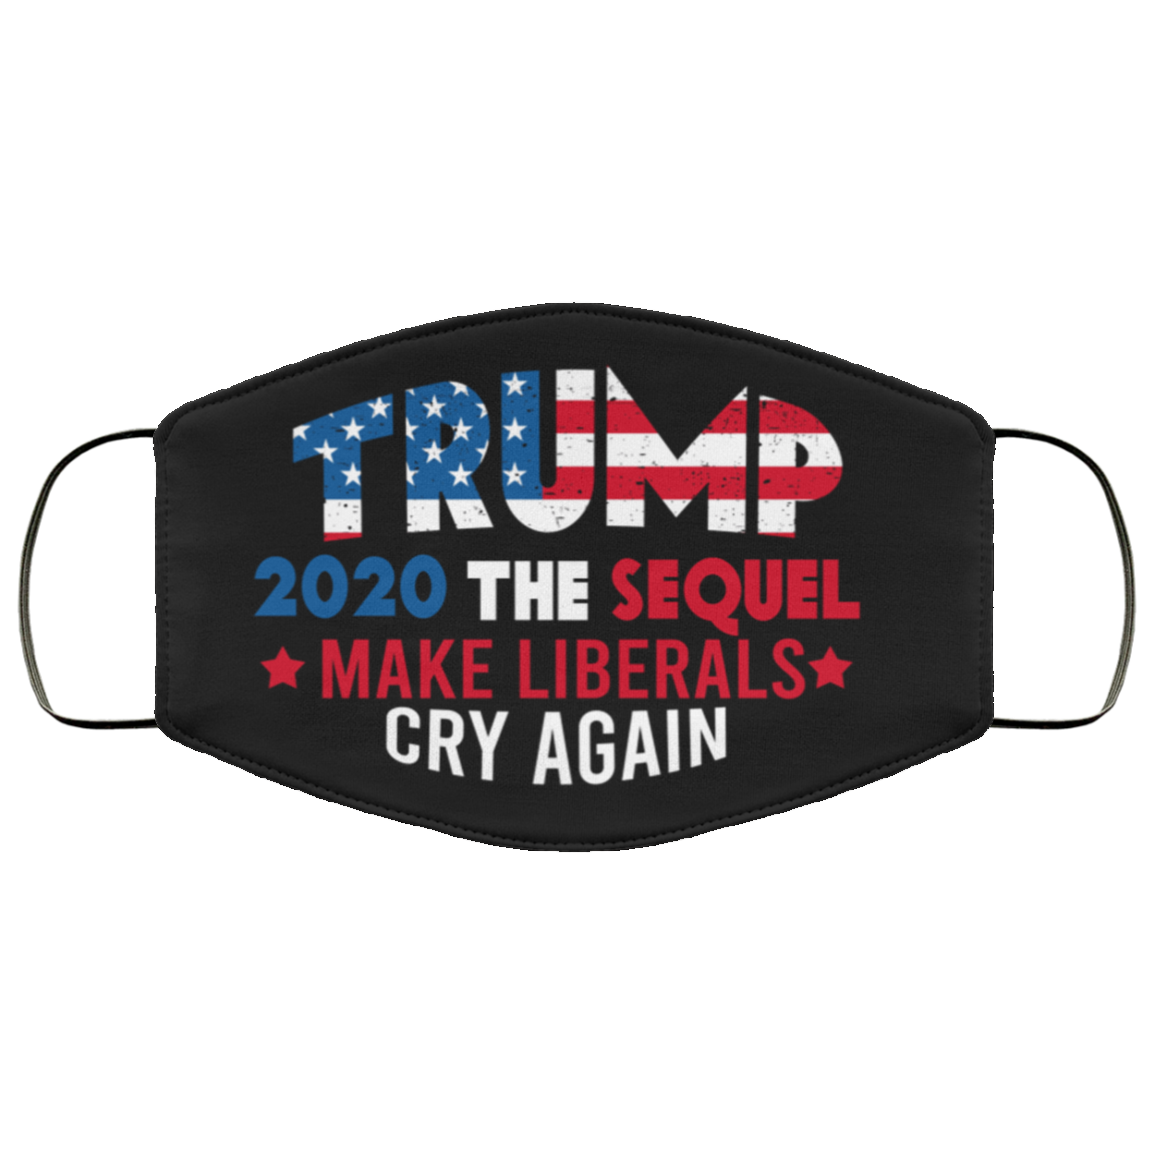 Is Halloween 2020 A Sequal Trump 2020 The Sequel Make Liberals Cry Again face mask